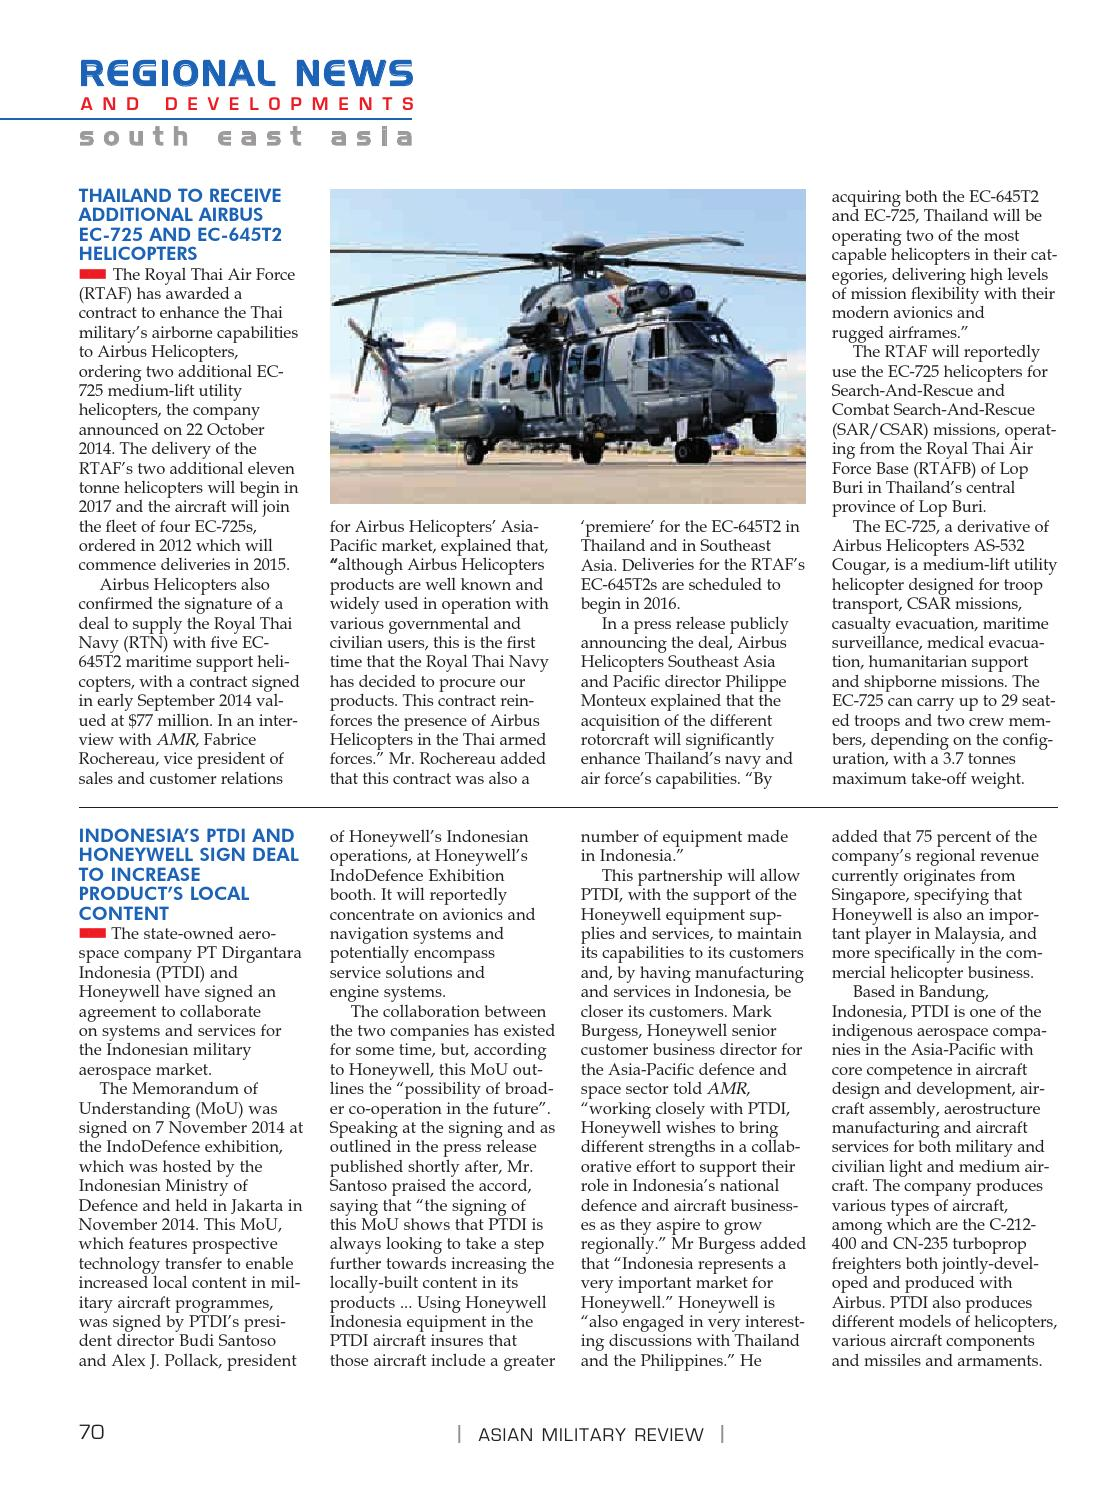 AMR Feb 2015 by Armada International & Asian Military Review